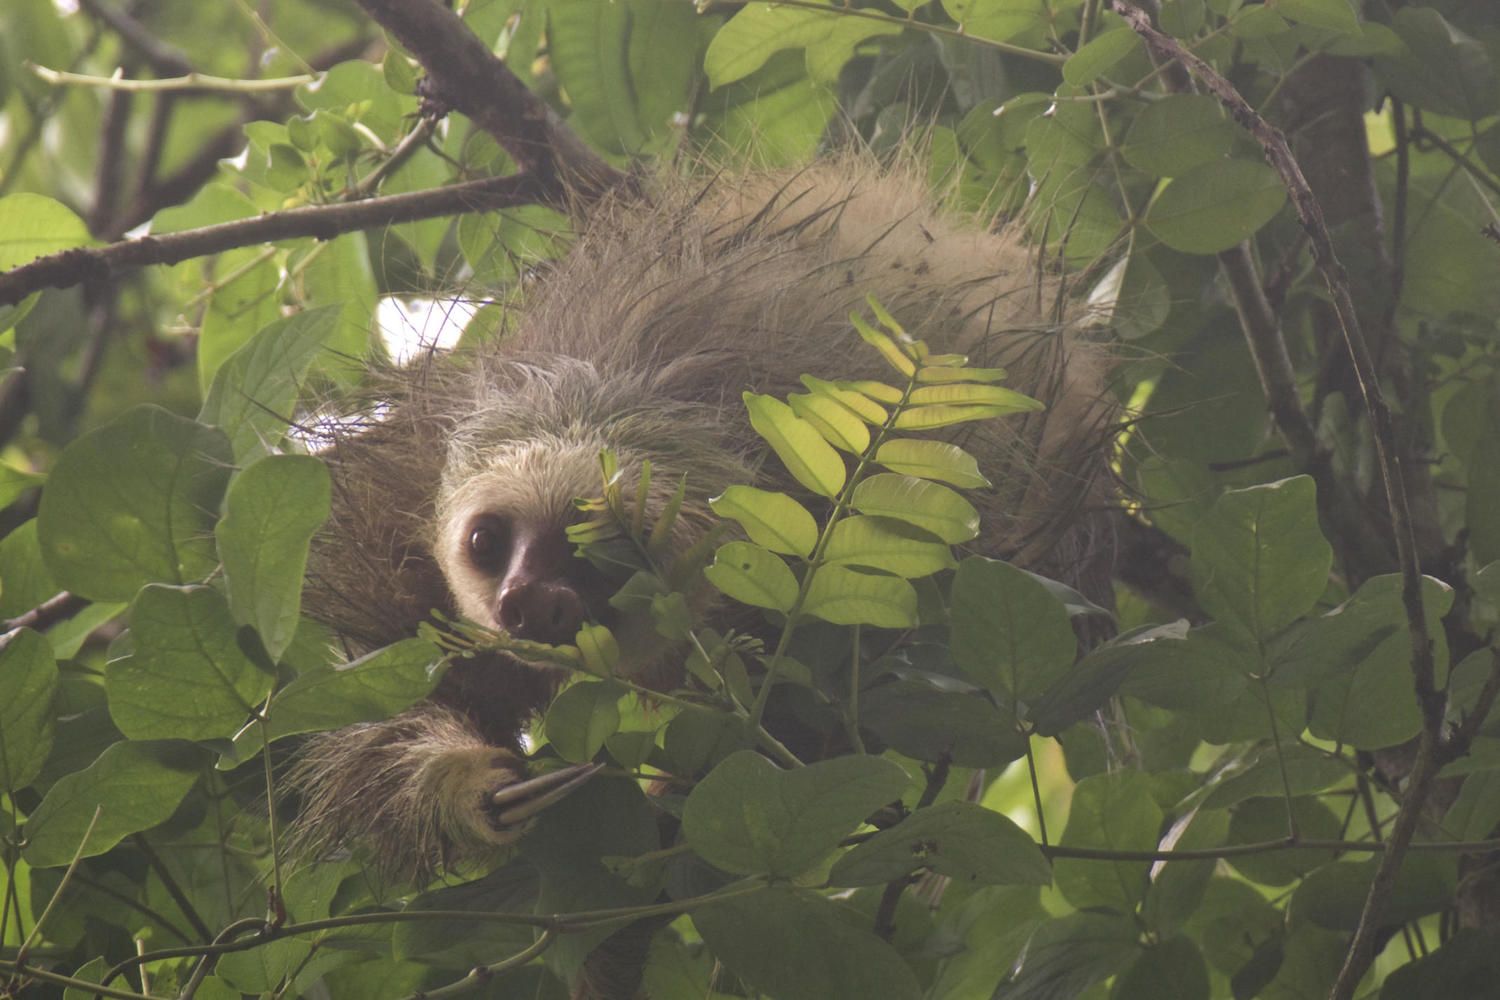 A two-toed sloth peers through the foliage in Cahuita